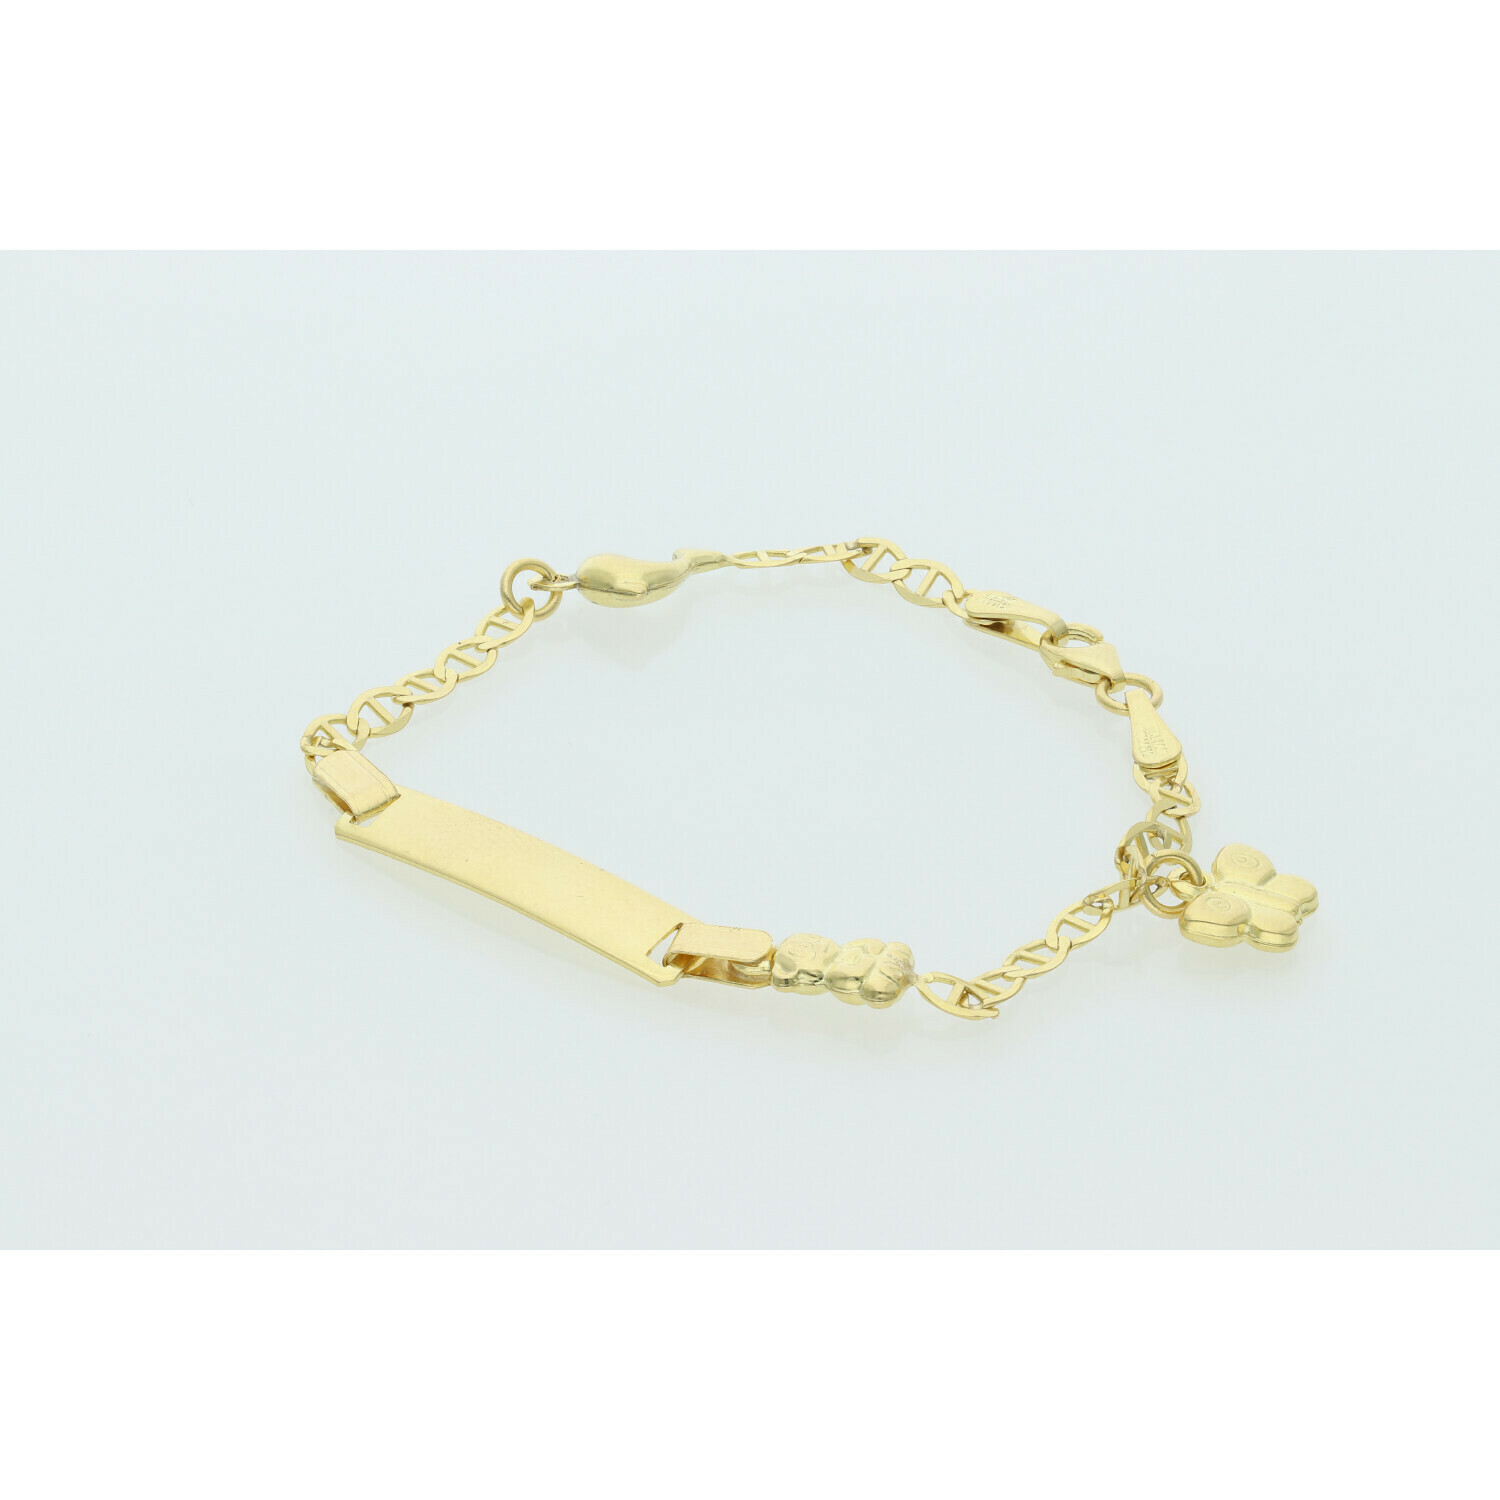 10 Karat Gold Fancy G ID & Mini Charms Bracelet